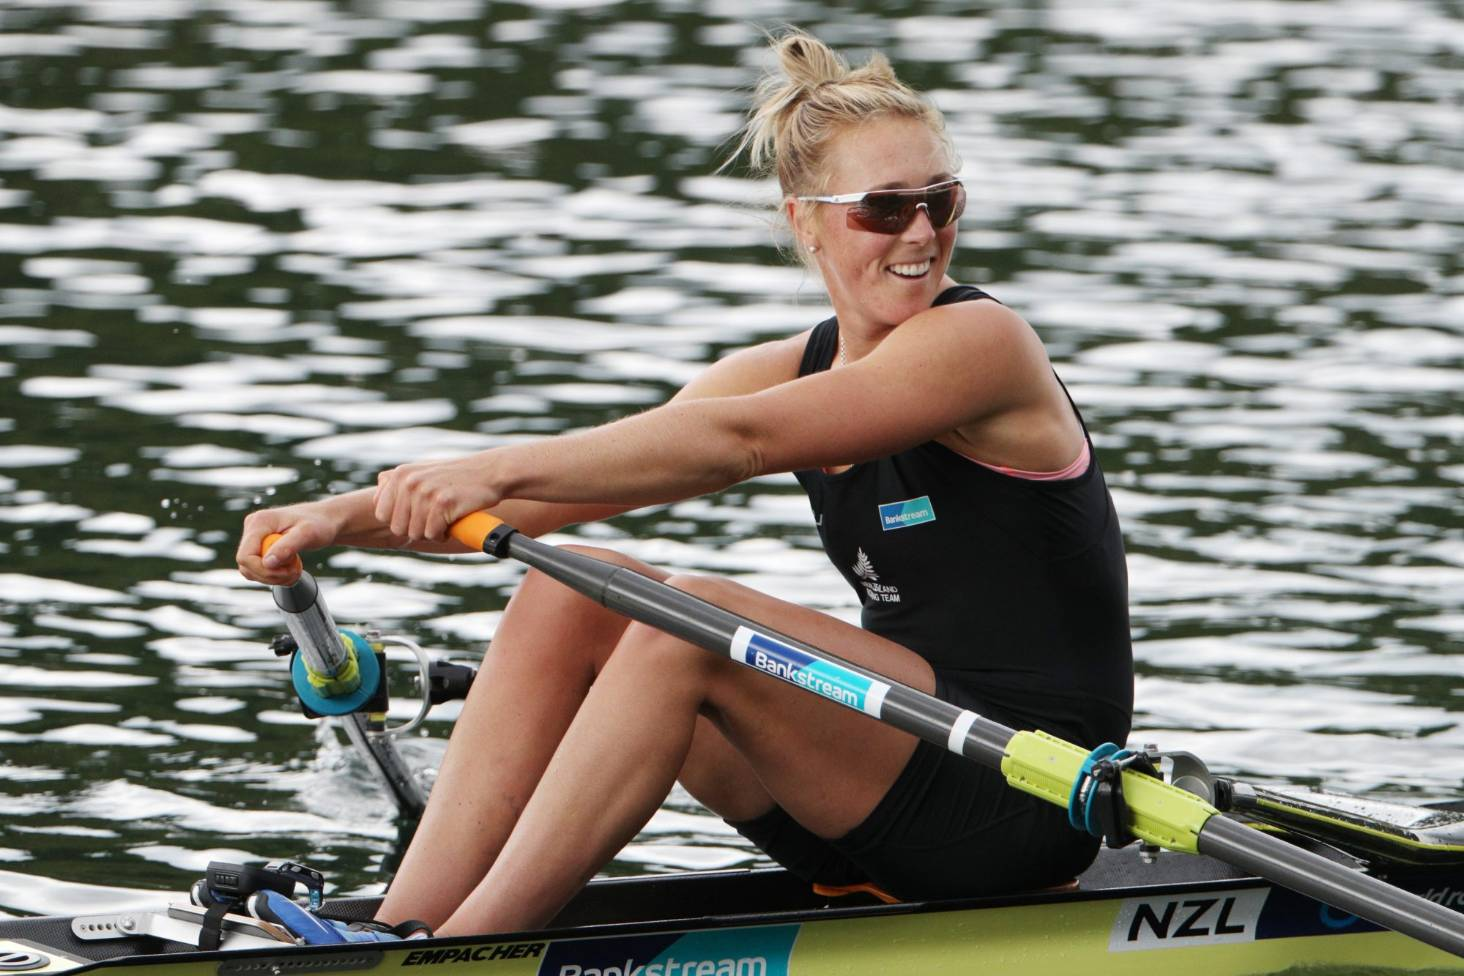 Olympic Power Rankings: Emma Twigg hoping third time's the charm in